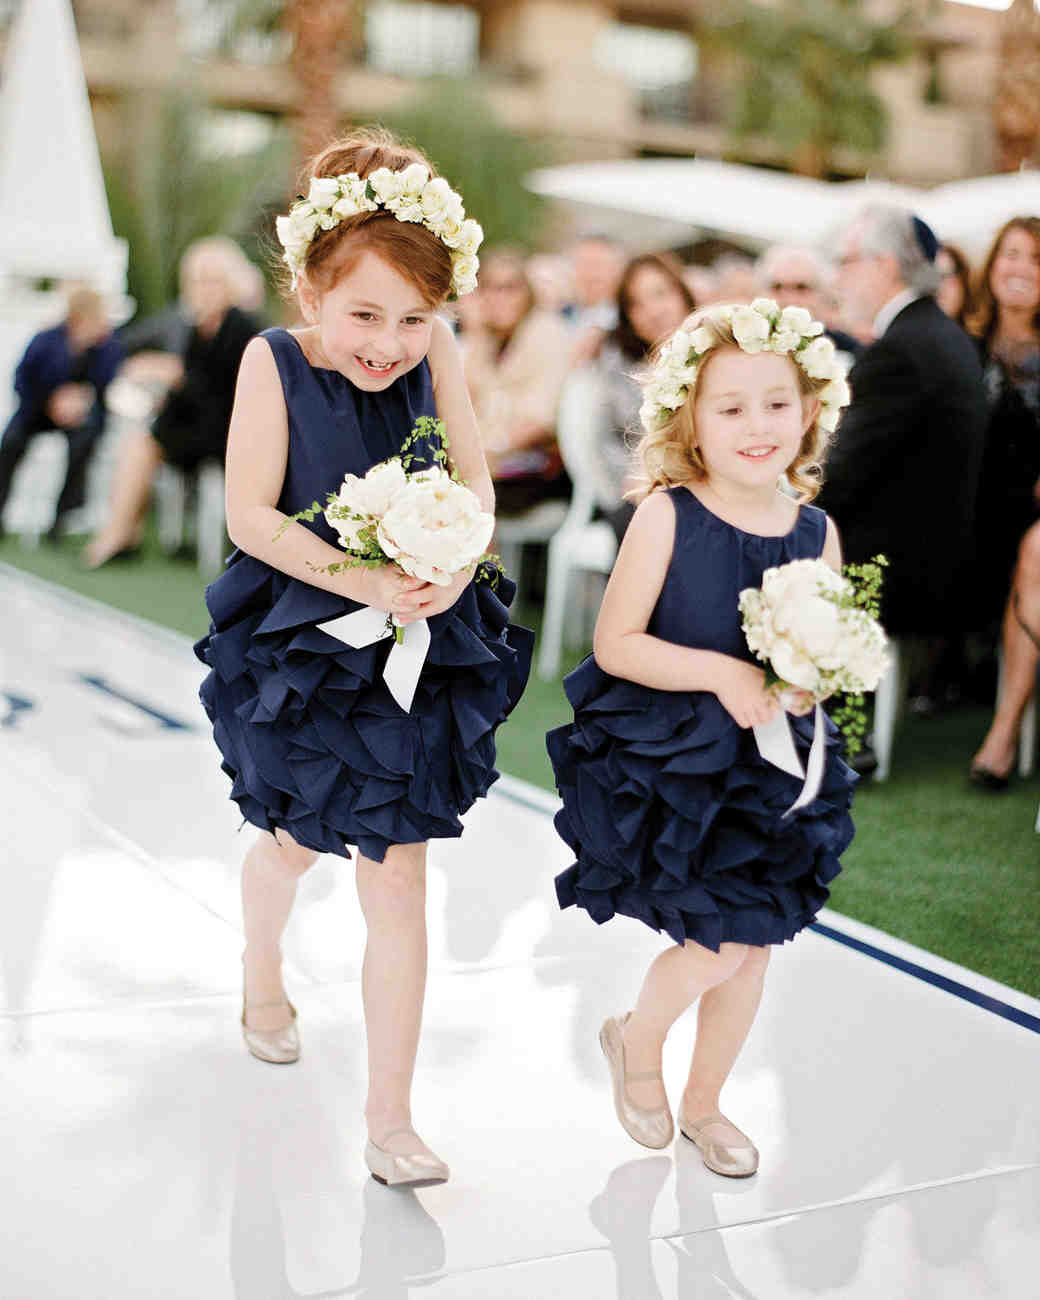 tali-mike-real-wedding-flower-girls-walking-down-aisle.jpg